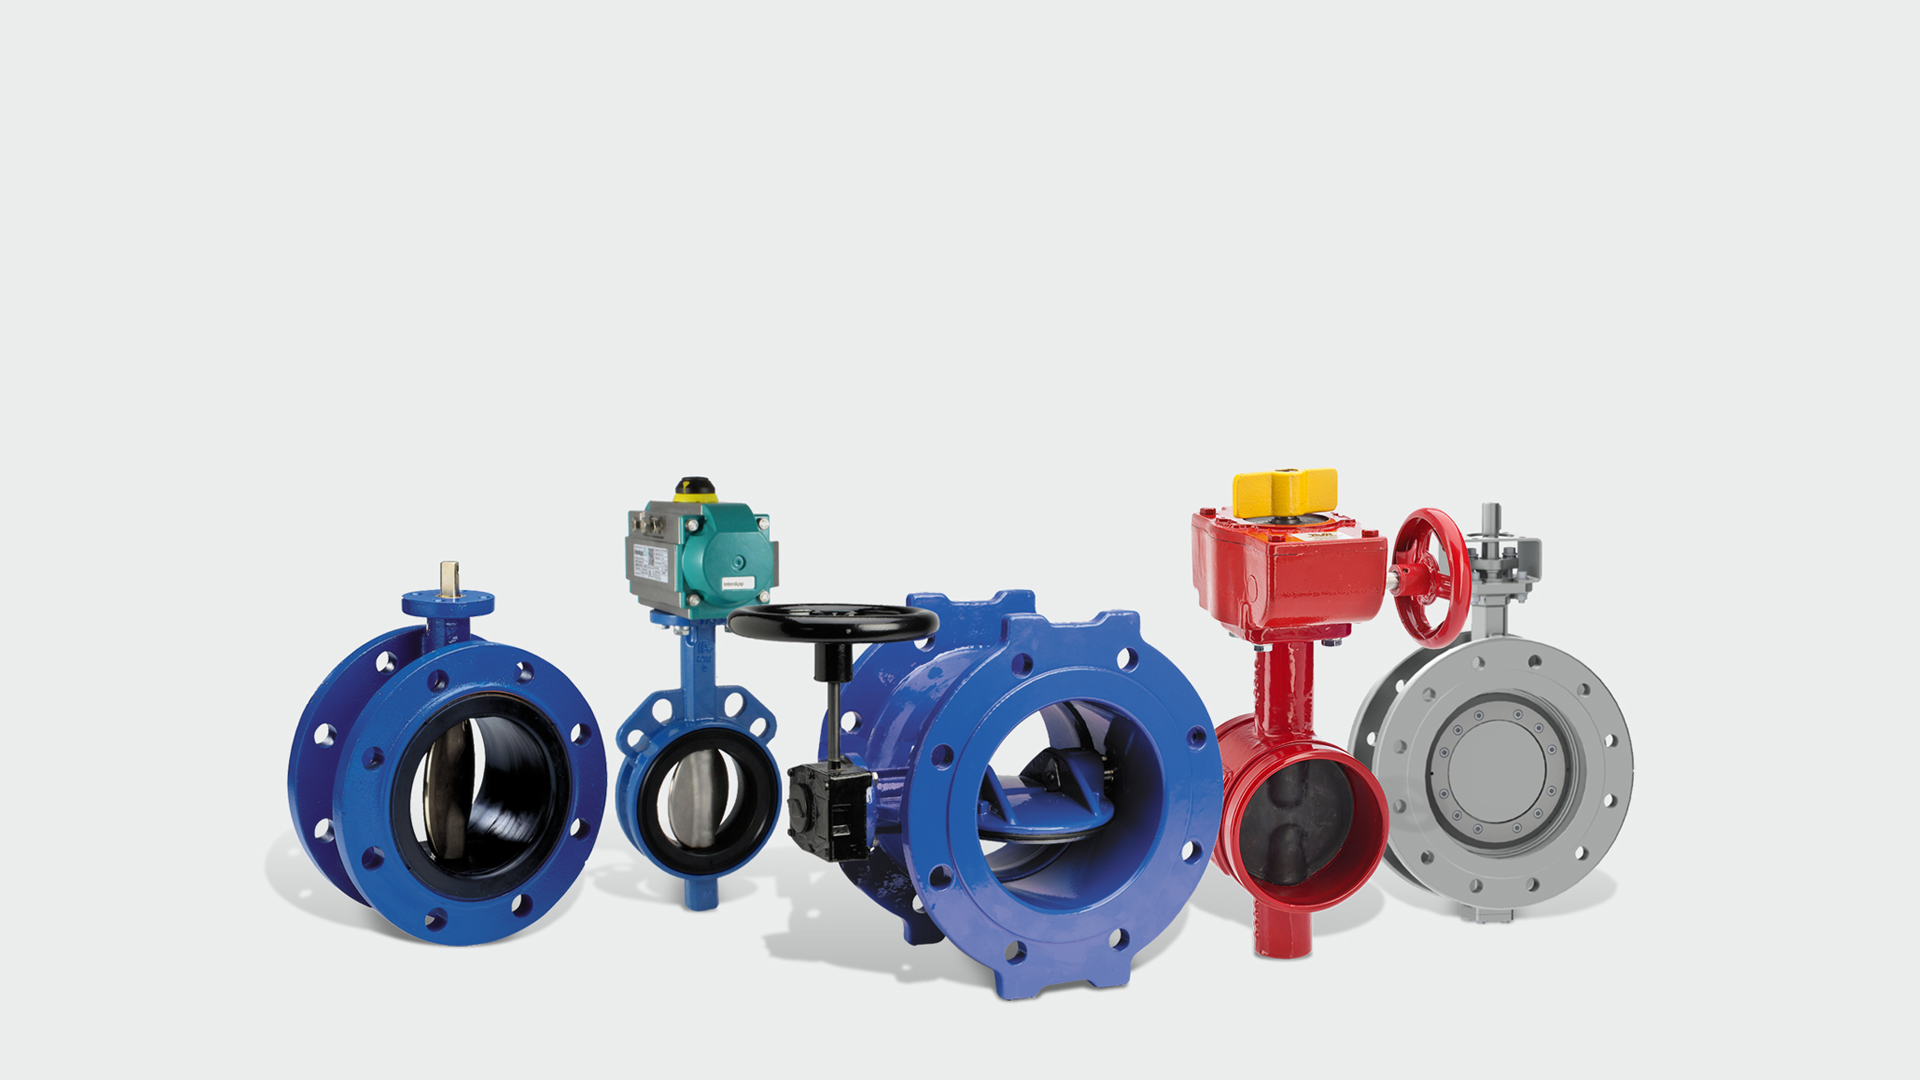 Visit our insights section to learn about AVK butterfly valves